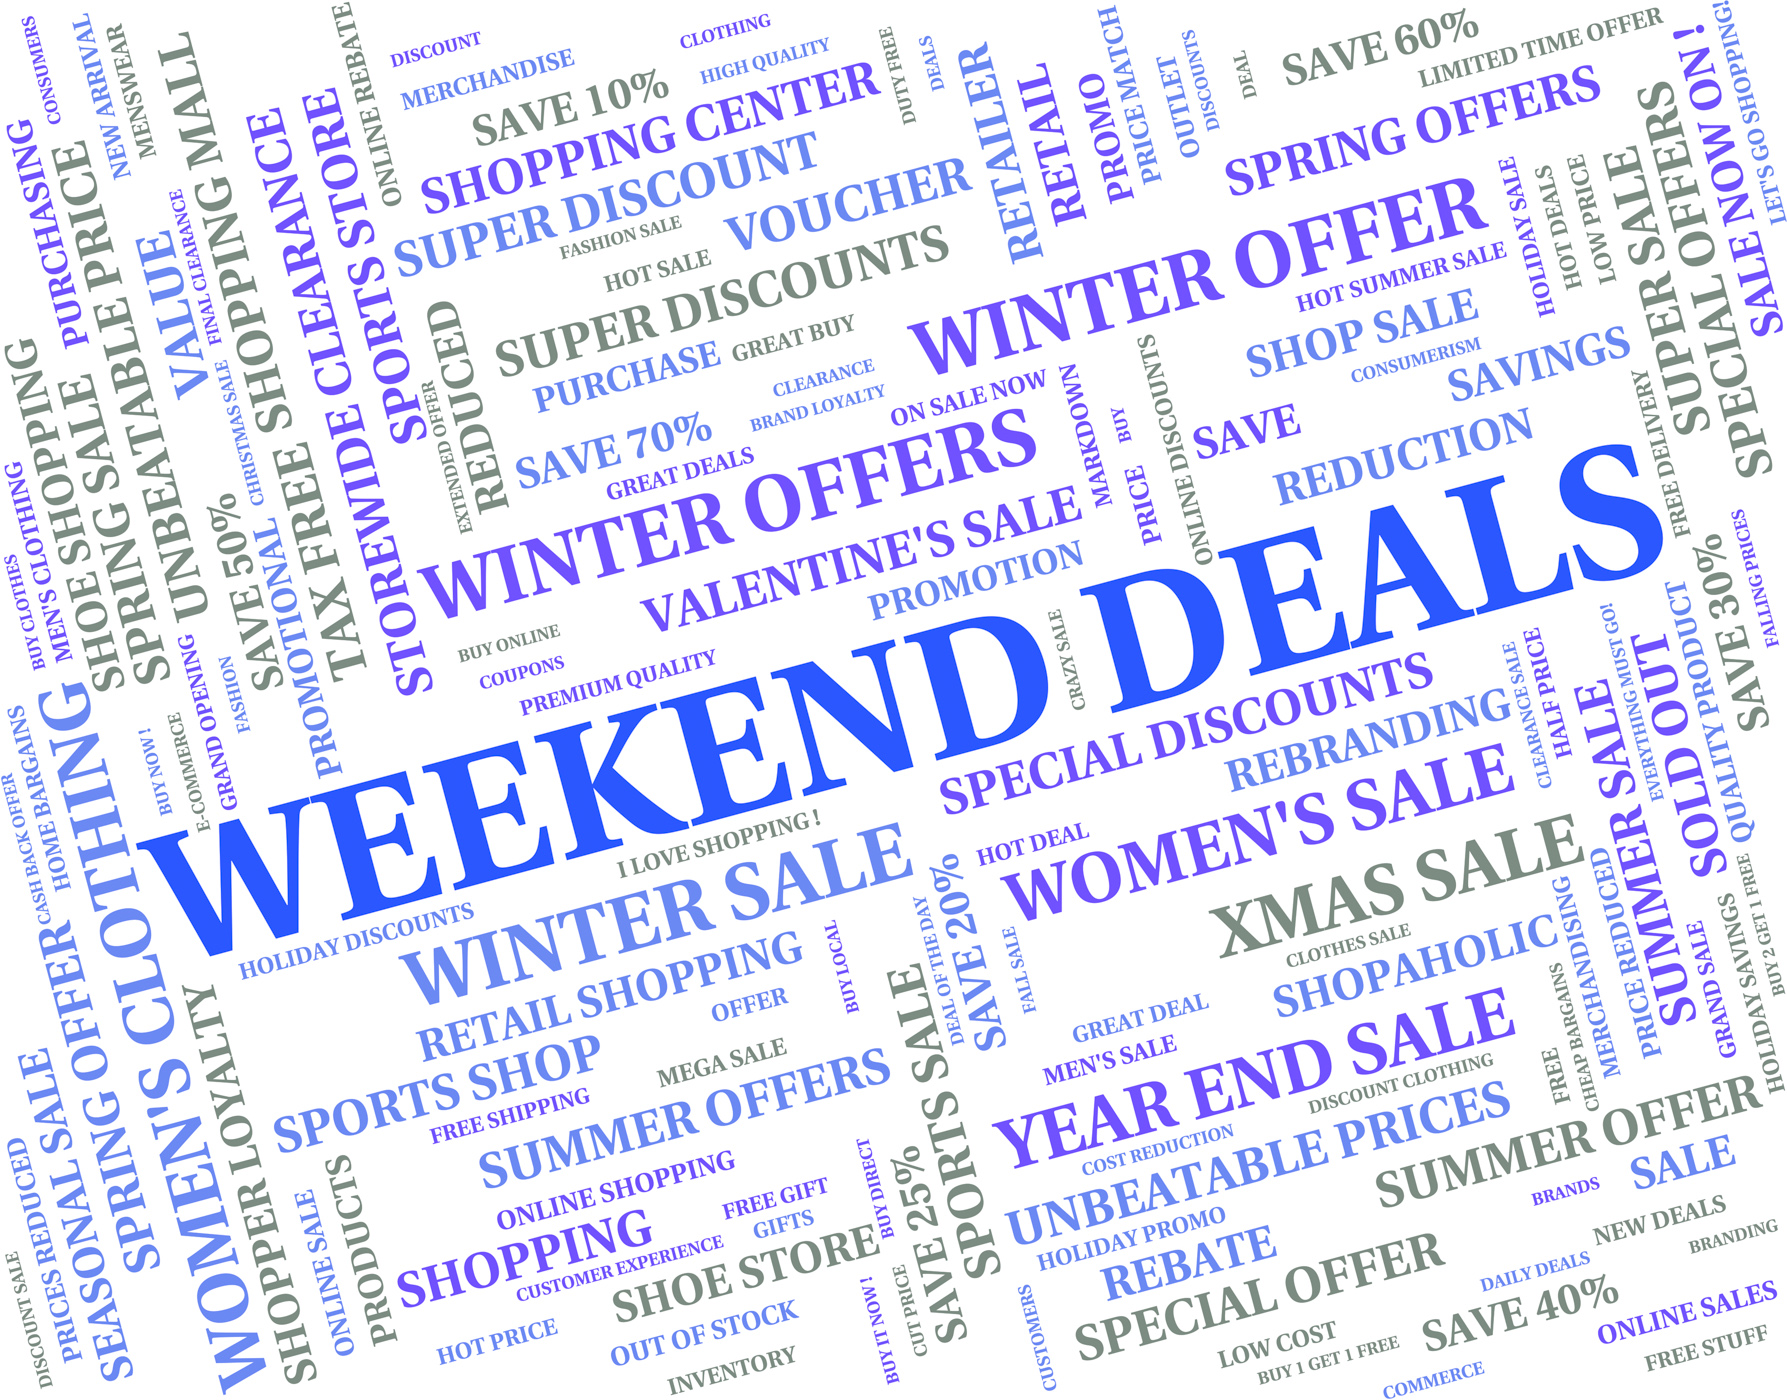 Weekend deals indicates trade weekends and word photo